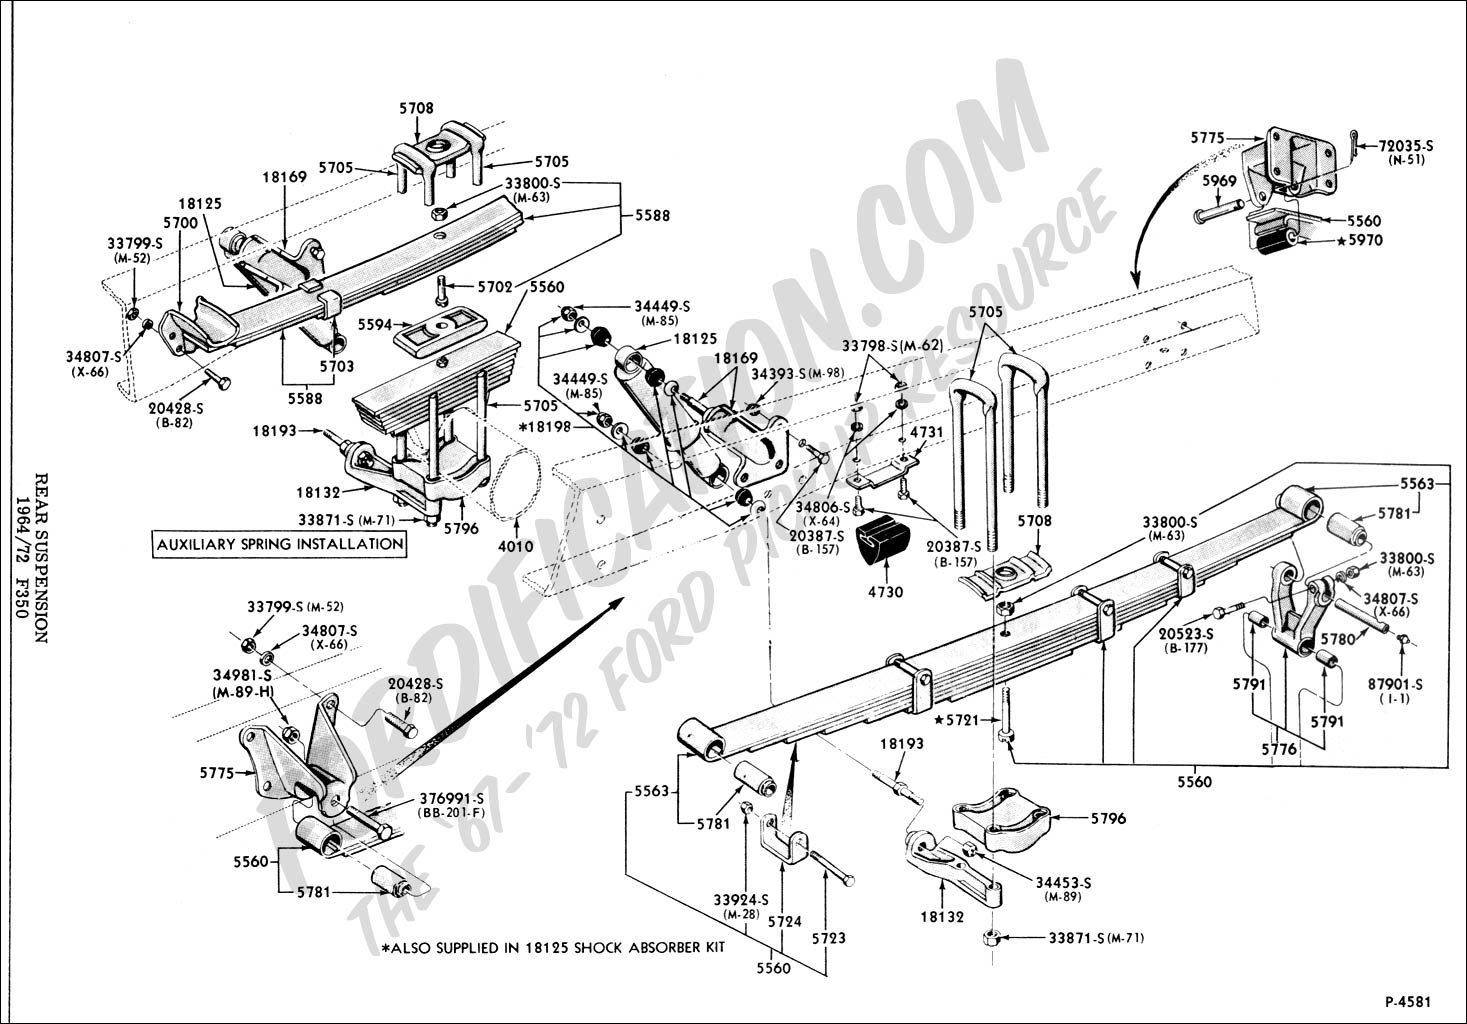 Mz Ts 150 Wiring Diagram besides 4l60e Transmission Wiring Diagram Sevimliler together with Laminated Wiring Diagram For 1967 Gmc V8 Pickup besides 1974 Corvette Starter Wiring Diagram moreover 1960 Chevy Truck Wiring Diagrams. on chevelle wiring schematics